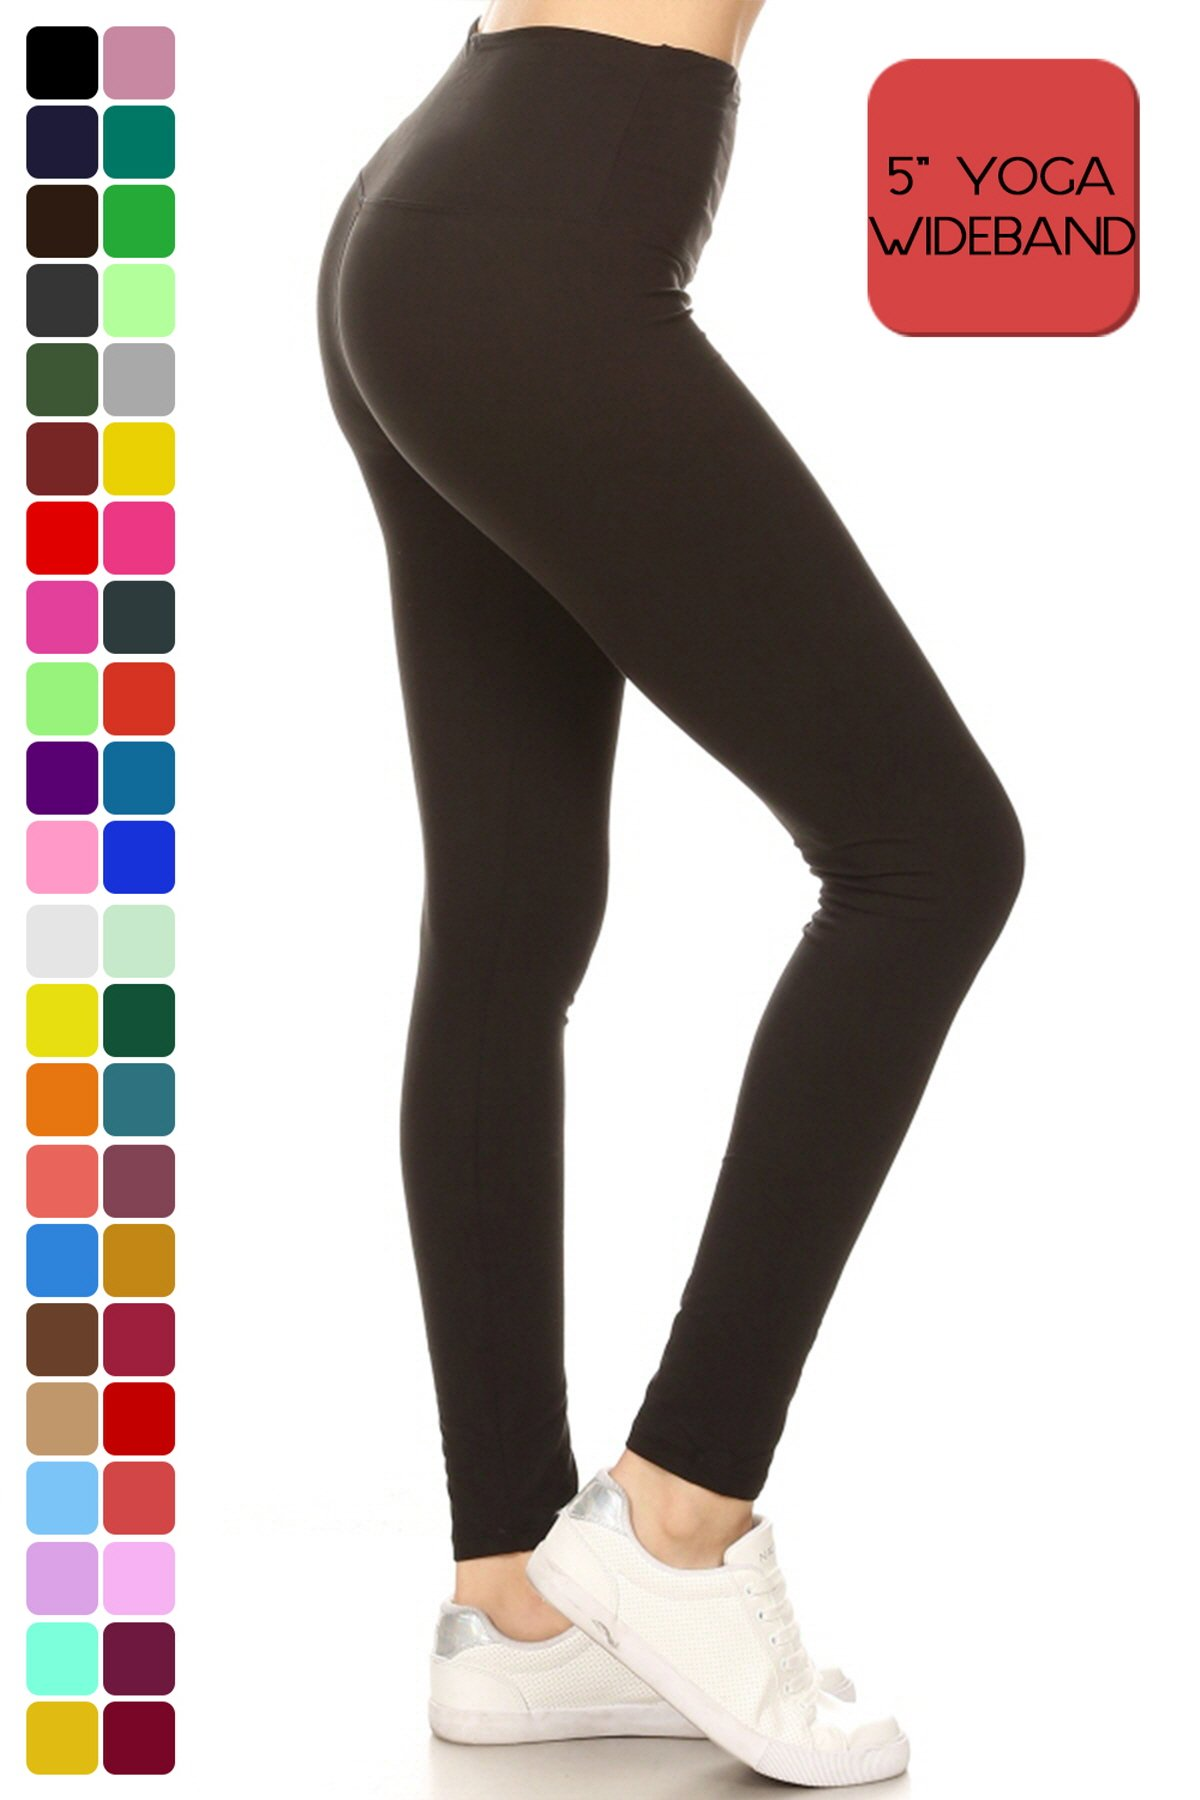 Leggings-Depot-High-Waisted-Leggings-Soft-Slim-37-Colors-1000-Prints